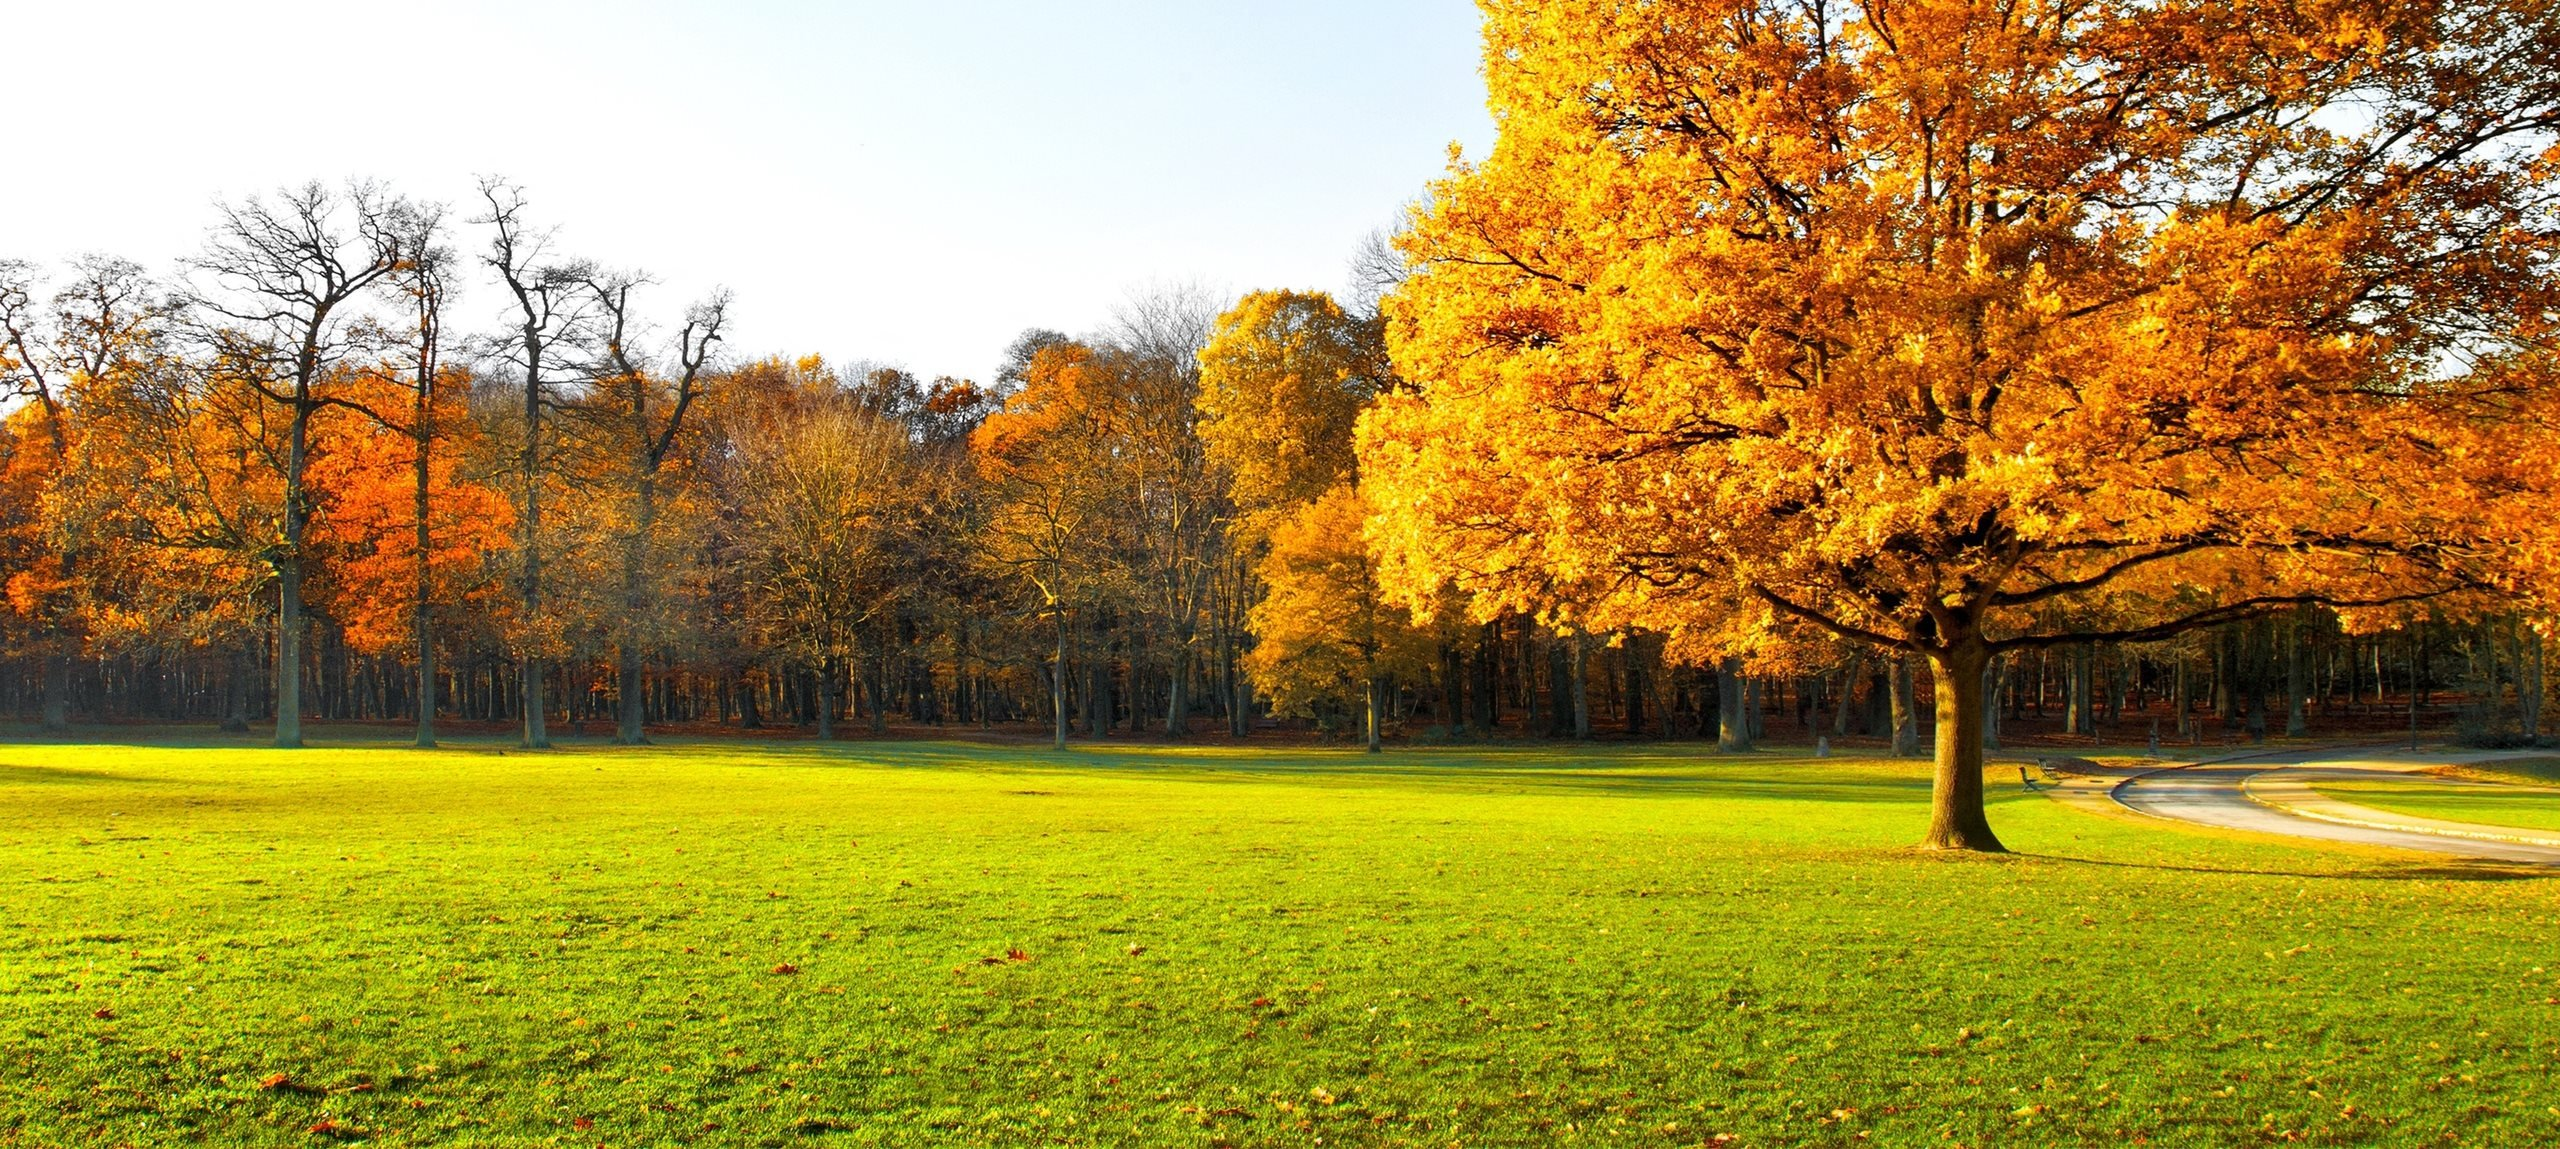 Generic image of grass and trees